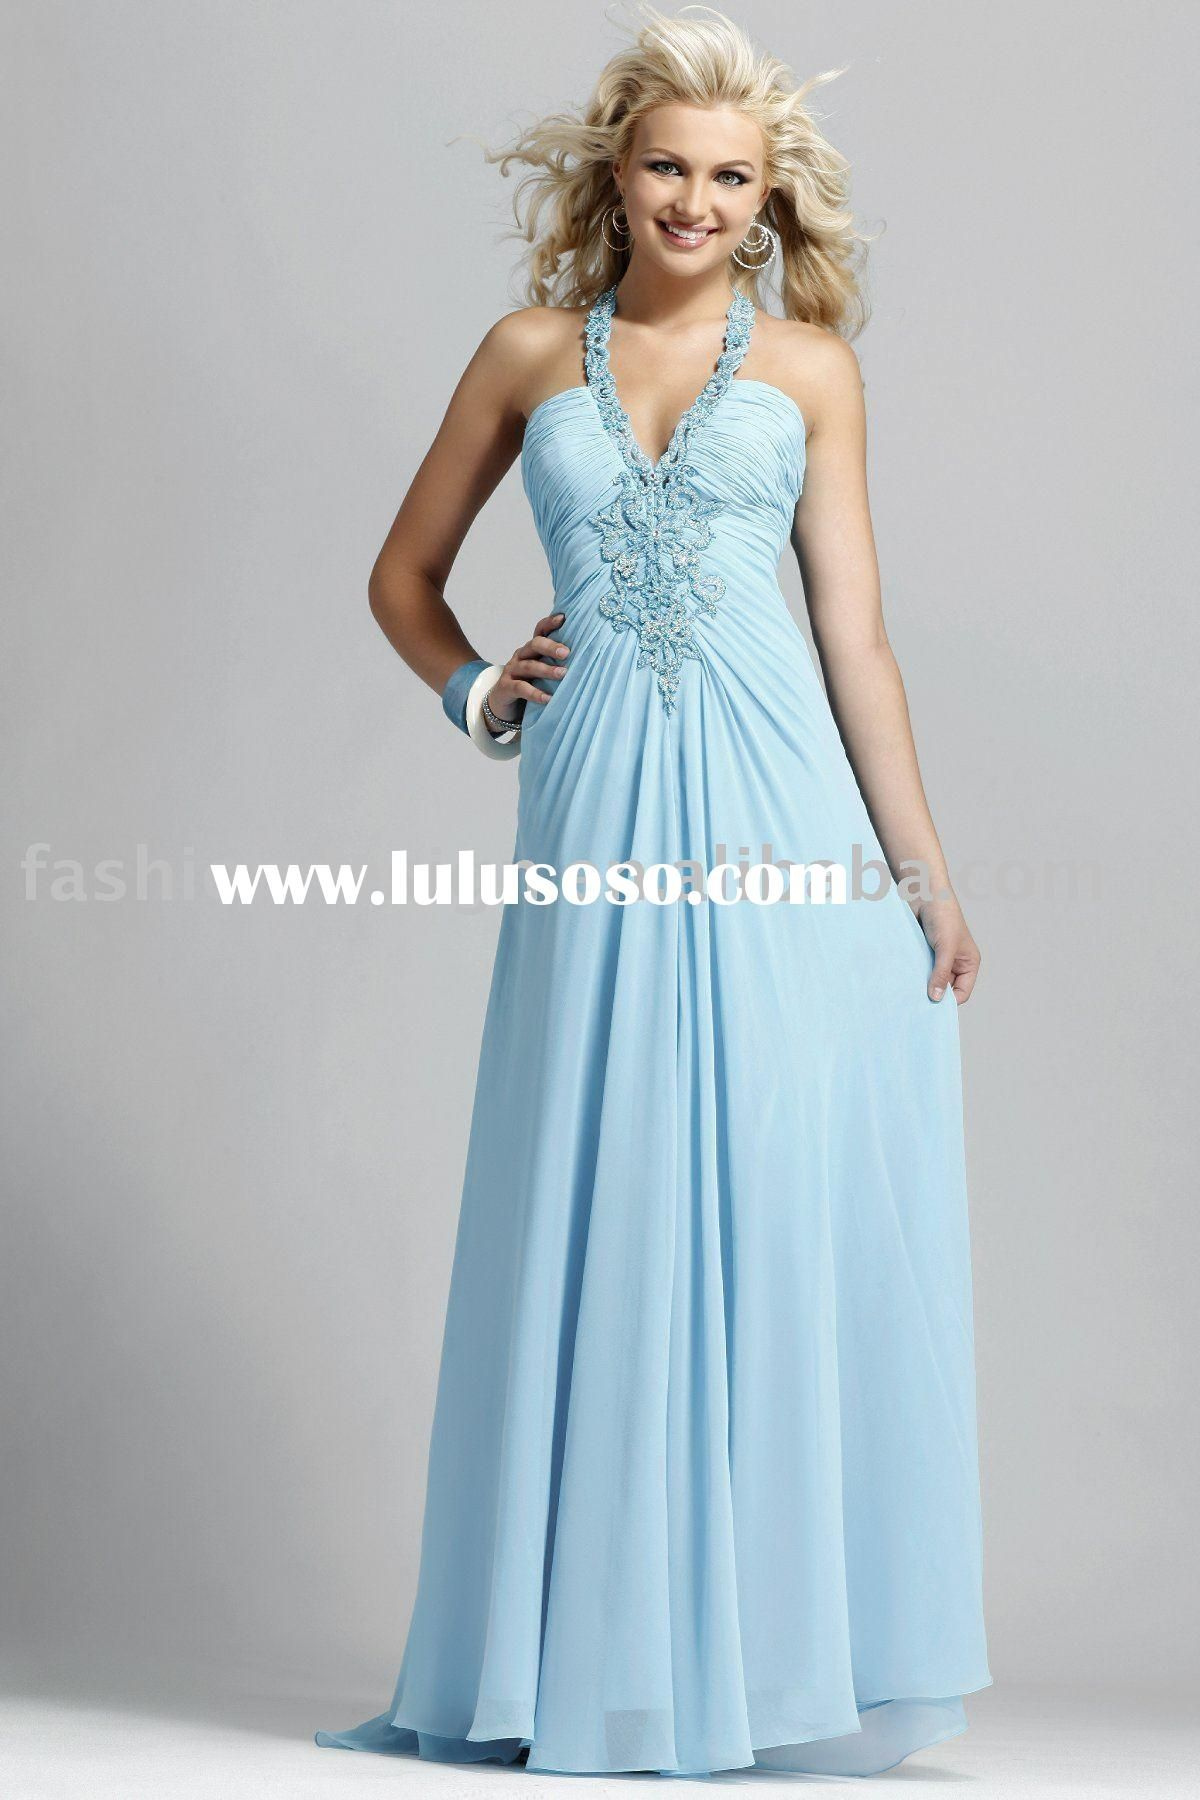 Sky Blue Bridesmaid Dresses | ... shiny fabric evening gowns Party ...